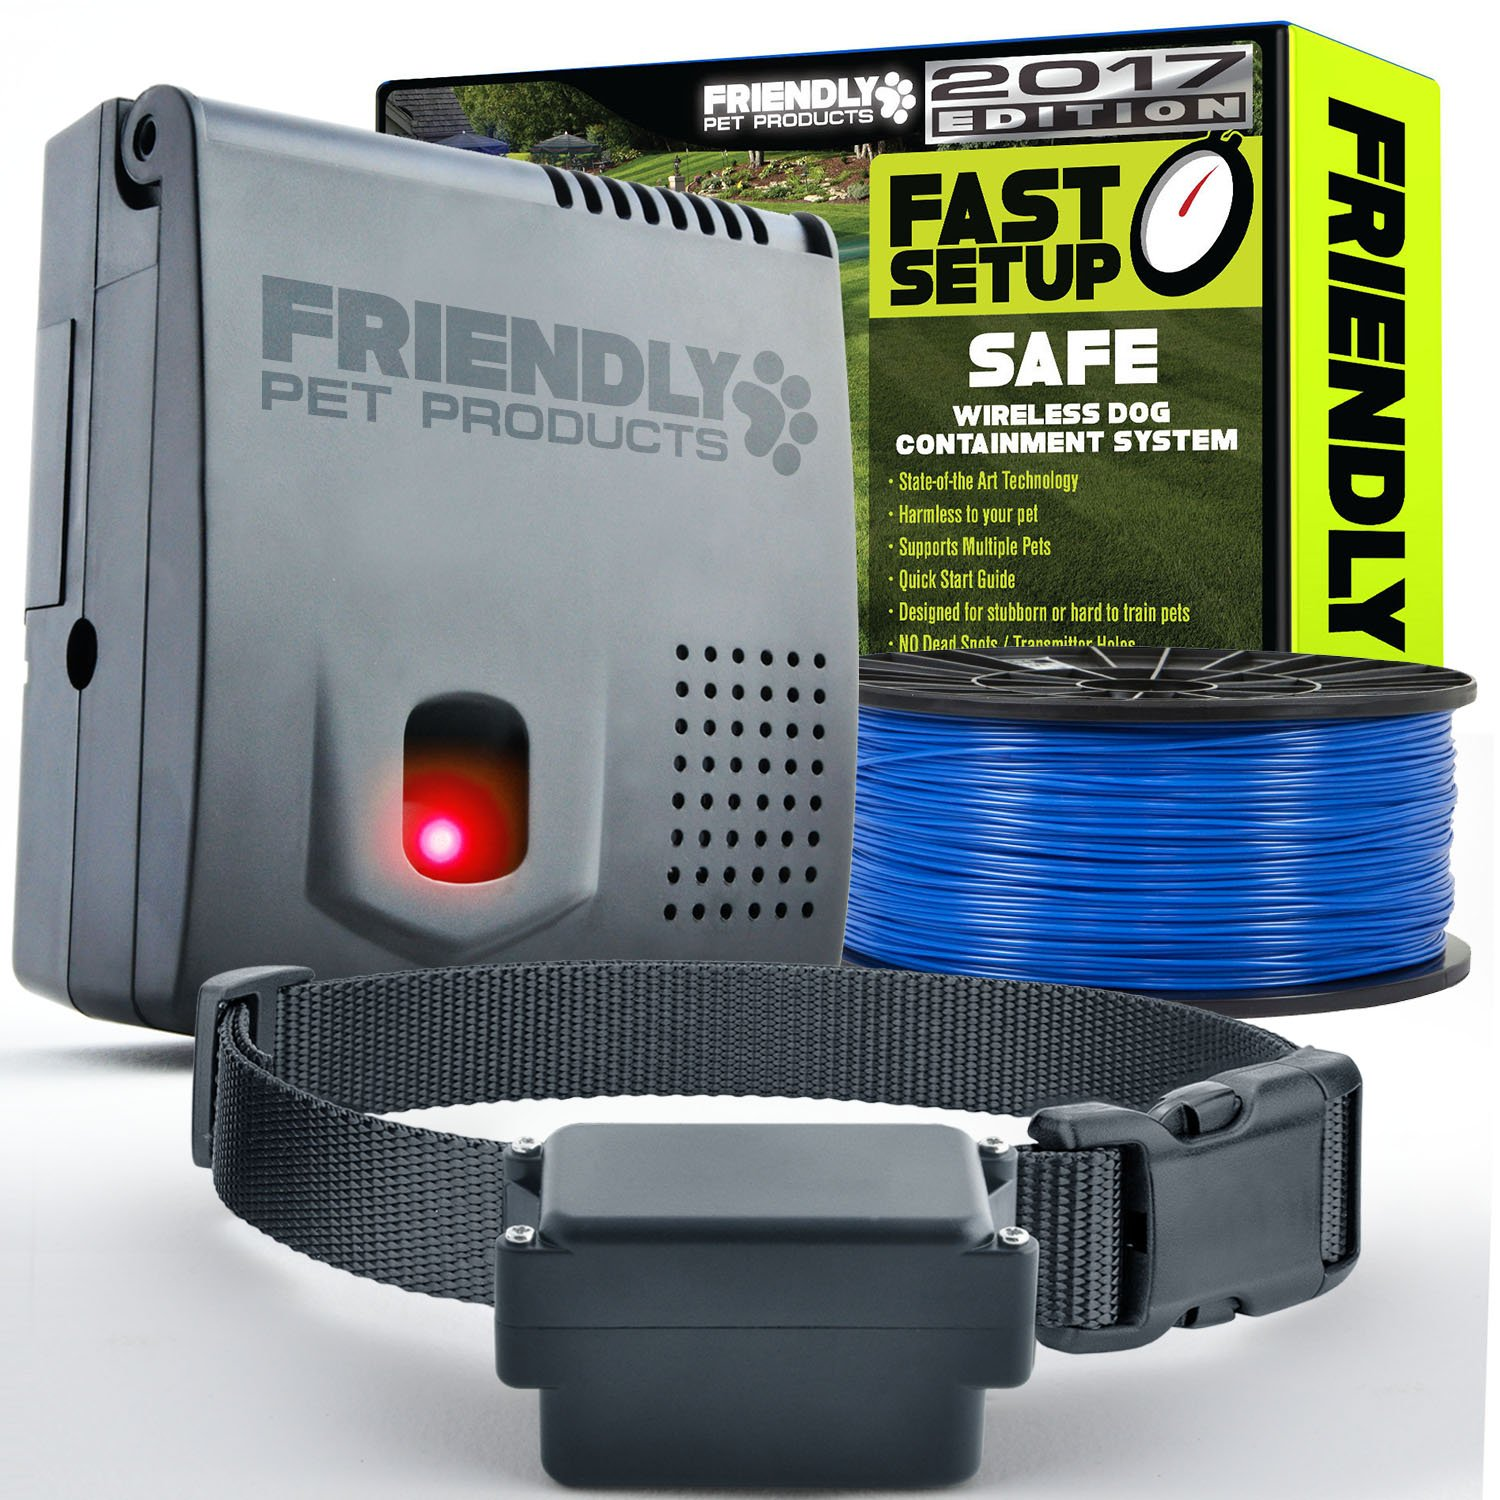 Wireless Dog Fence with Friendly Pet Products